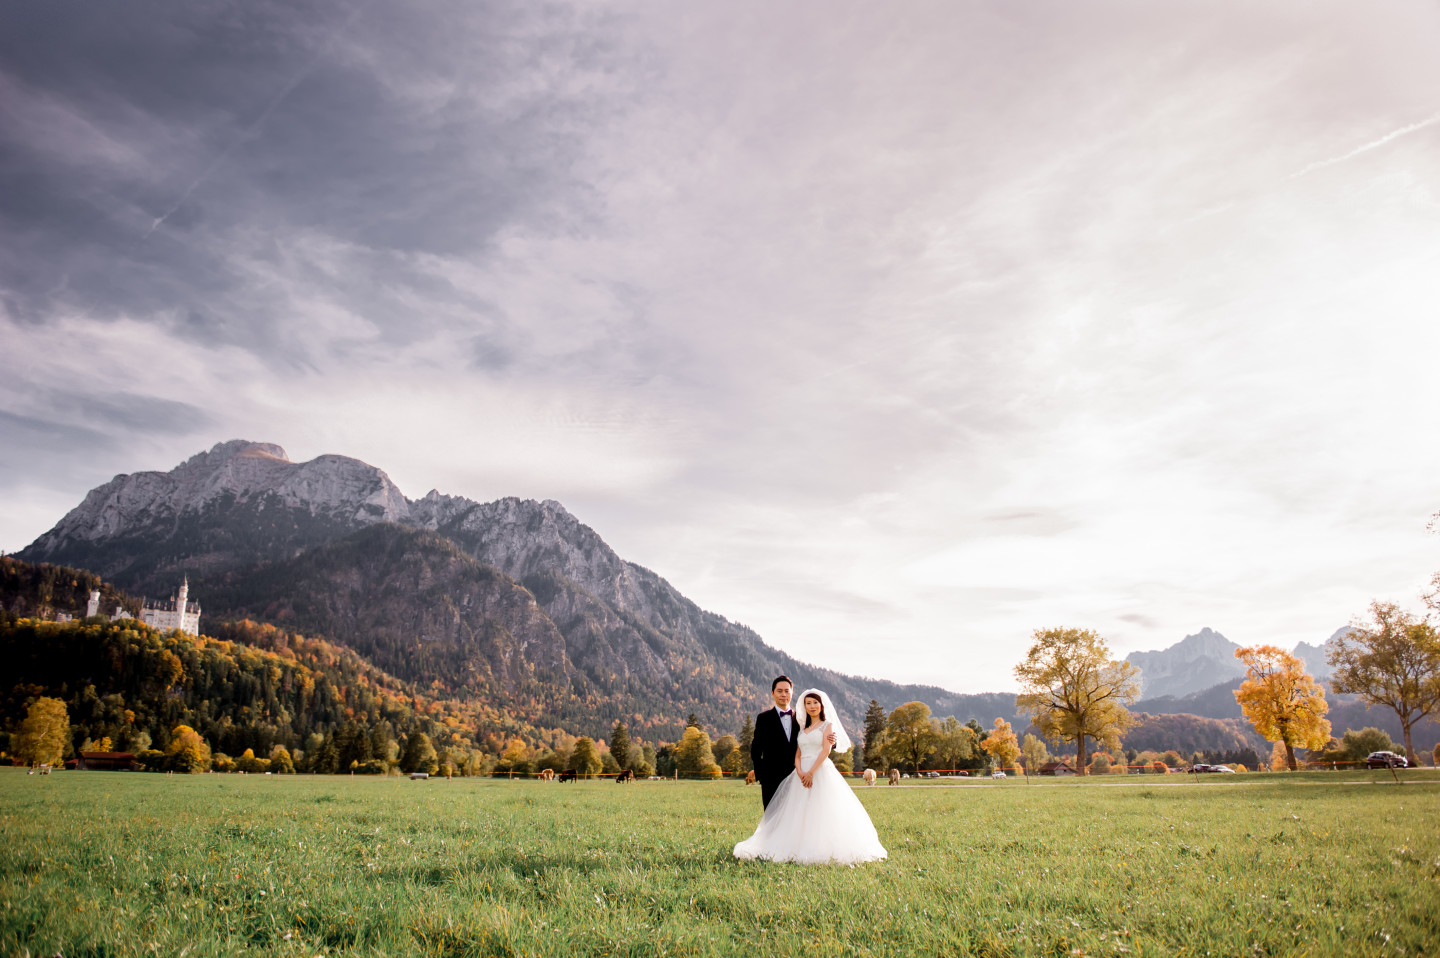 Prewedding Bavarian Photo Shoot in Wedding Dress with King Louis II of Bavaria's Castle